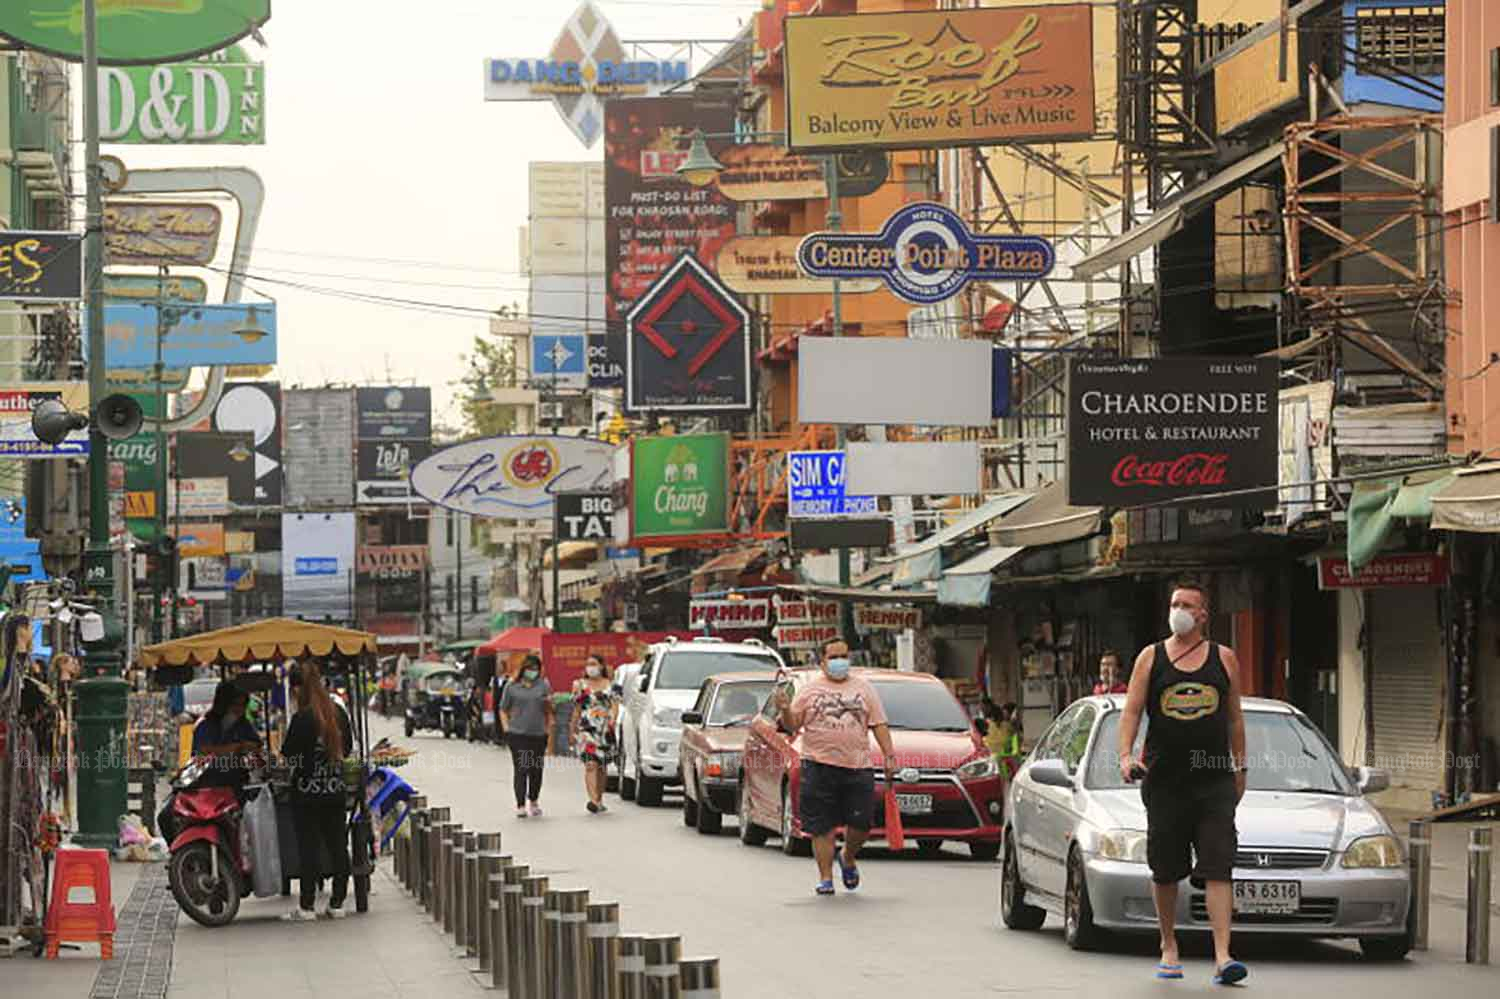 Songkran concerns